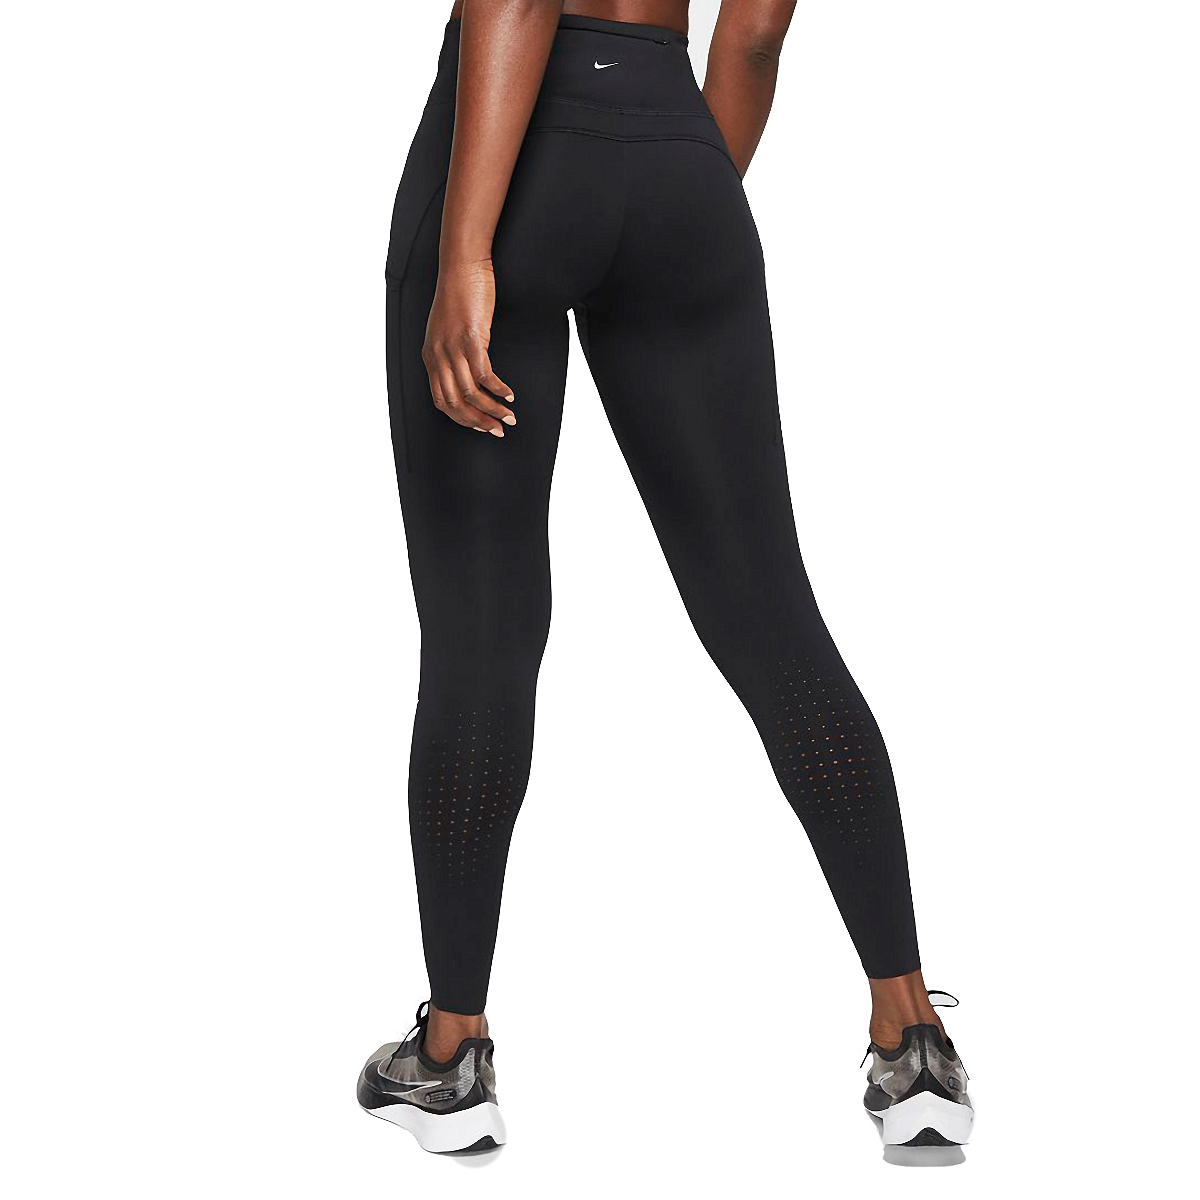 Women's Nike Epic Luxe Repel Tight  - Color: Black - Size: XS, Black, large, image 2